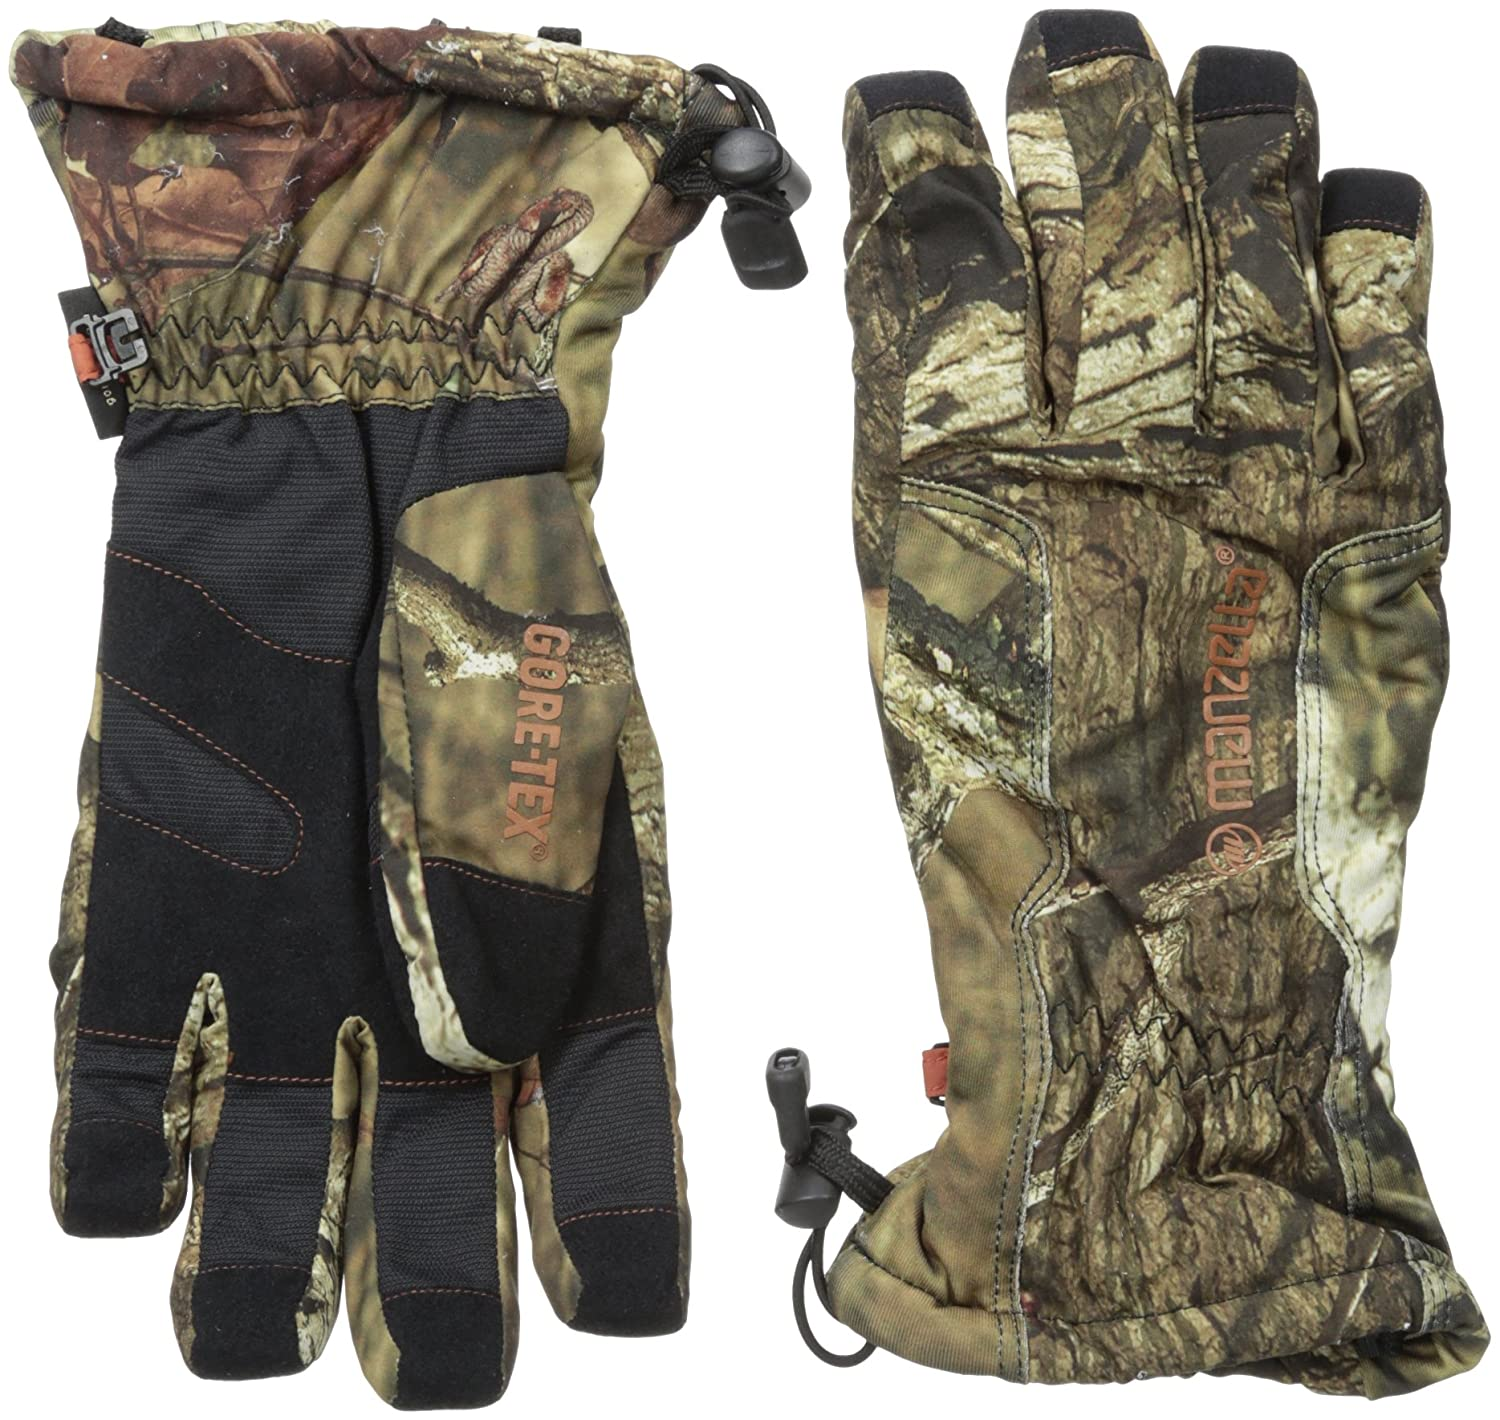 Manzella Men's GORE-TEX X-TRAFIT Guide Gloves Manzella Productions Inc.